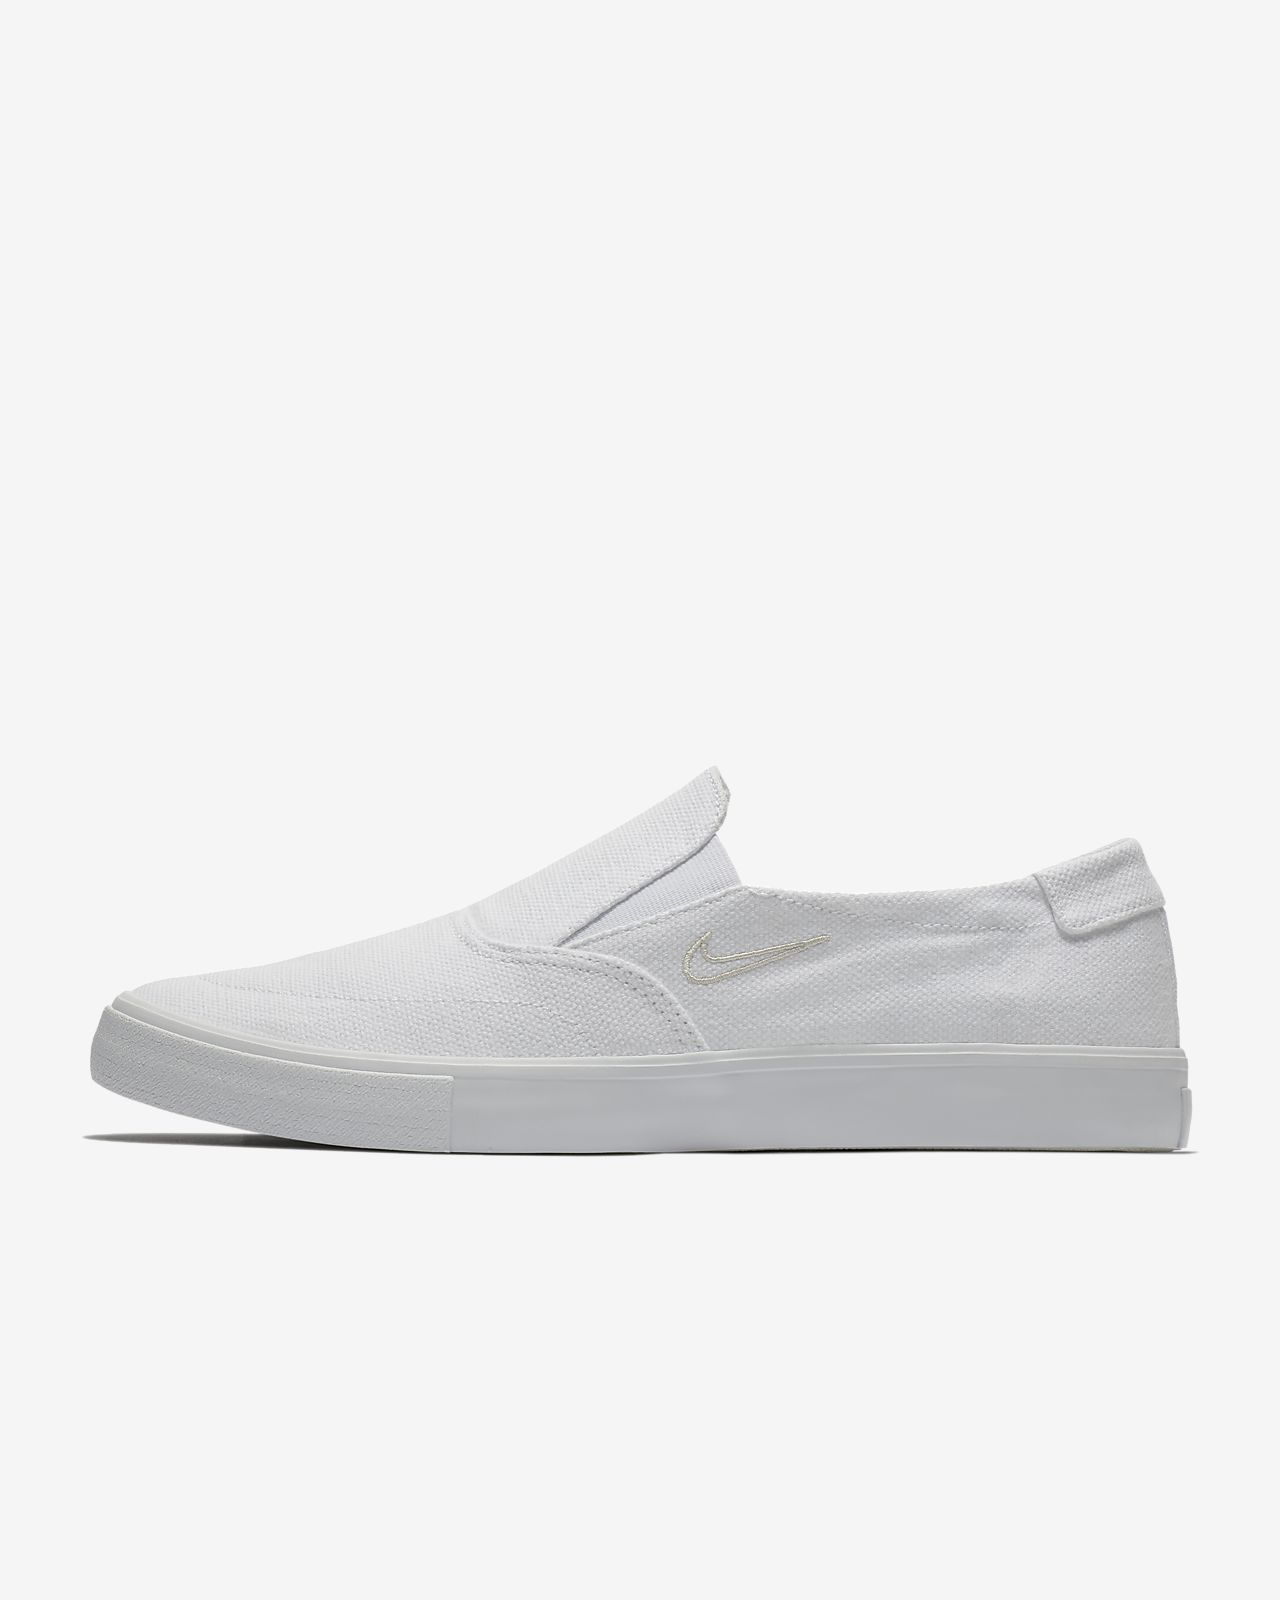 f667201994 Nike SB Portmore II Solarsoft Slip-on Men s Skateboarding Shoe. Nike.com